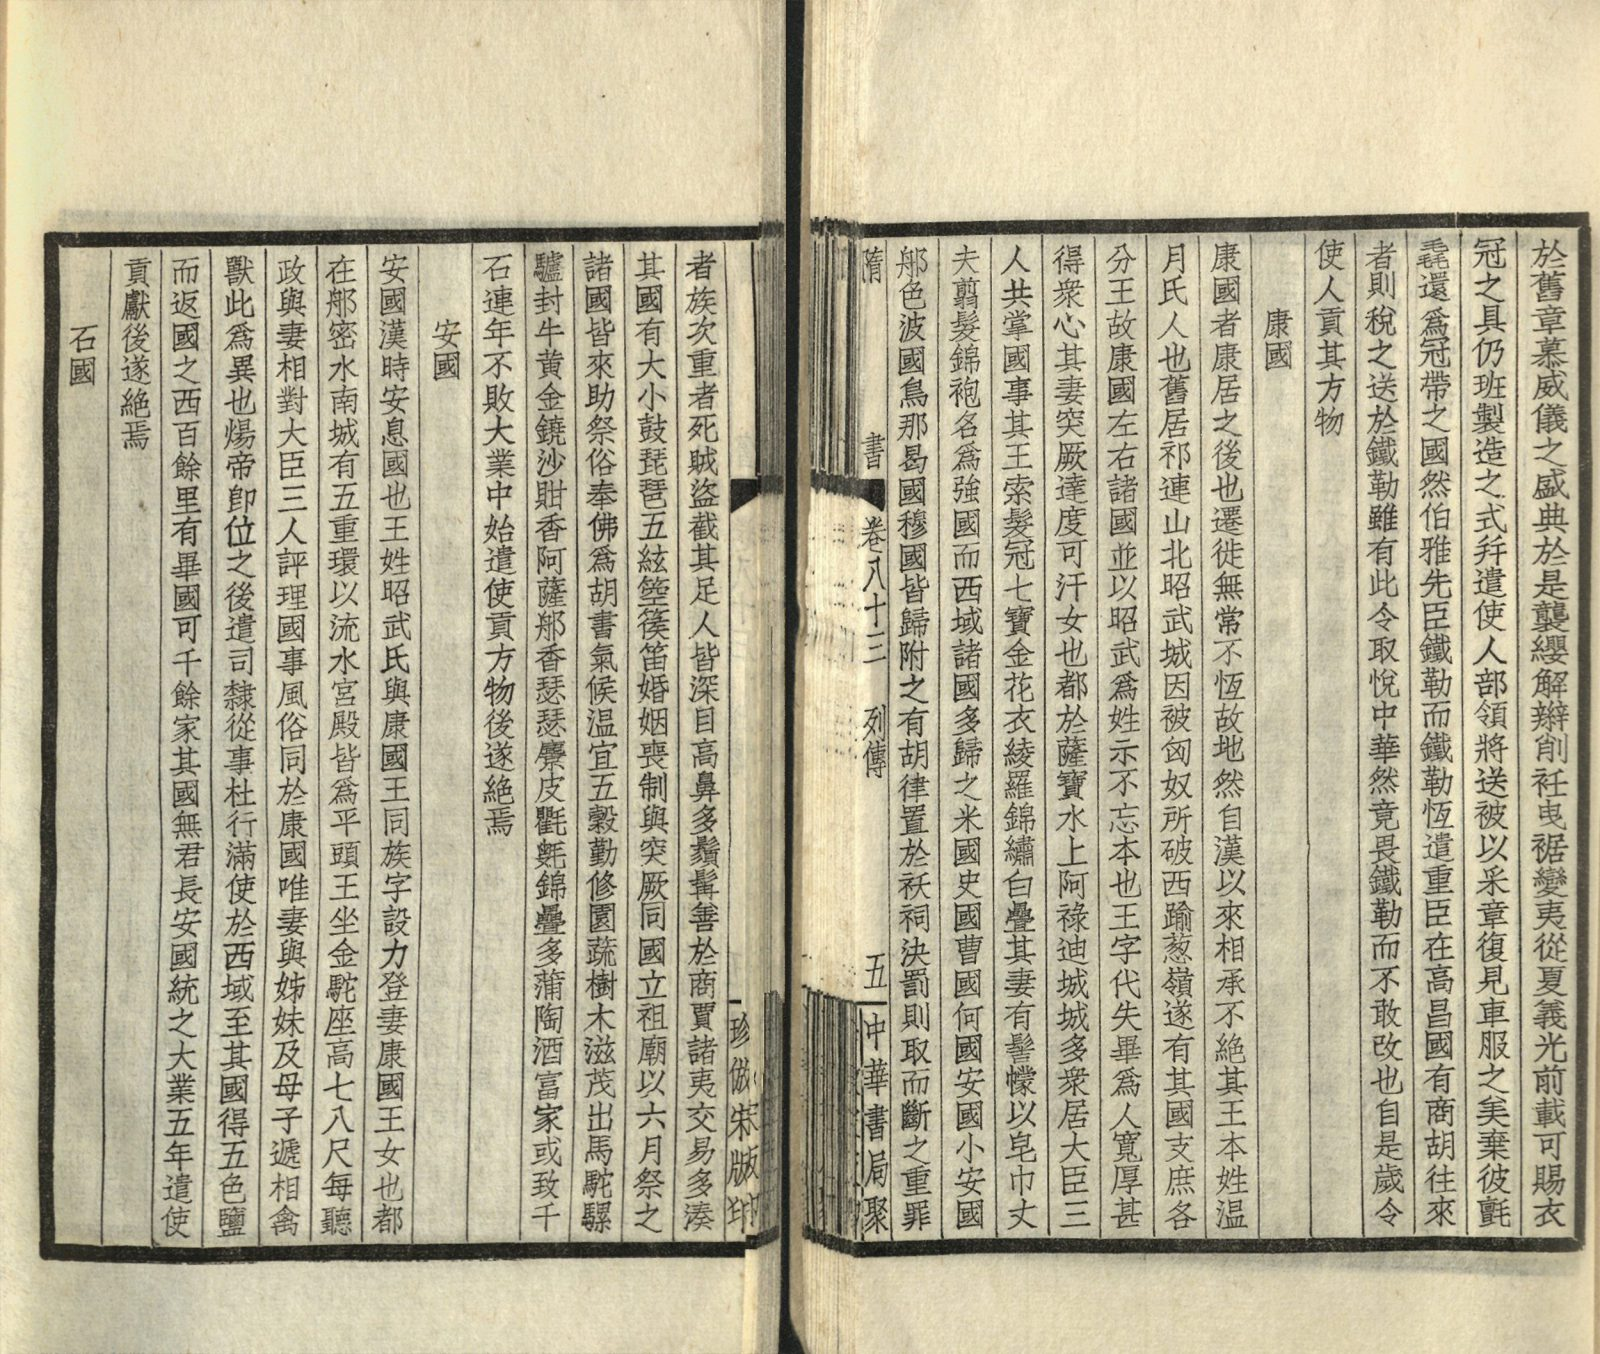 Printed text in China